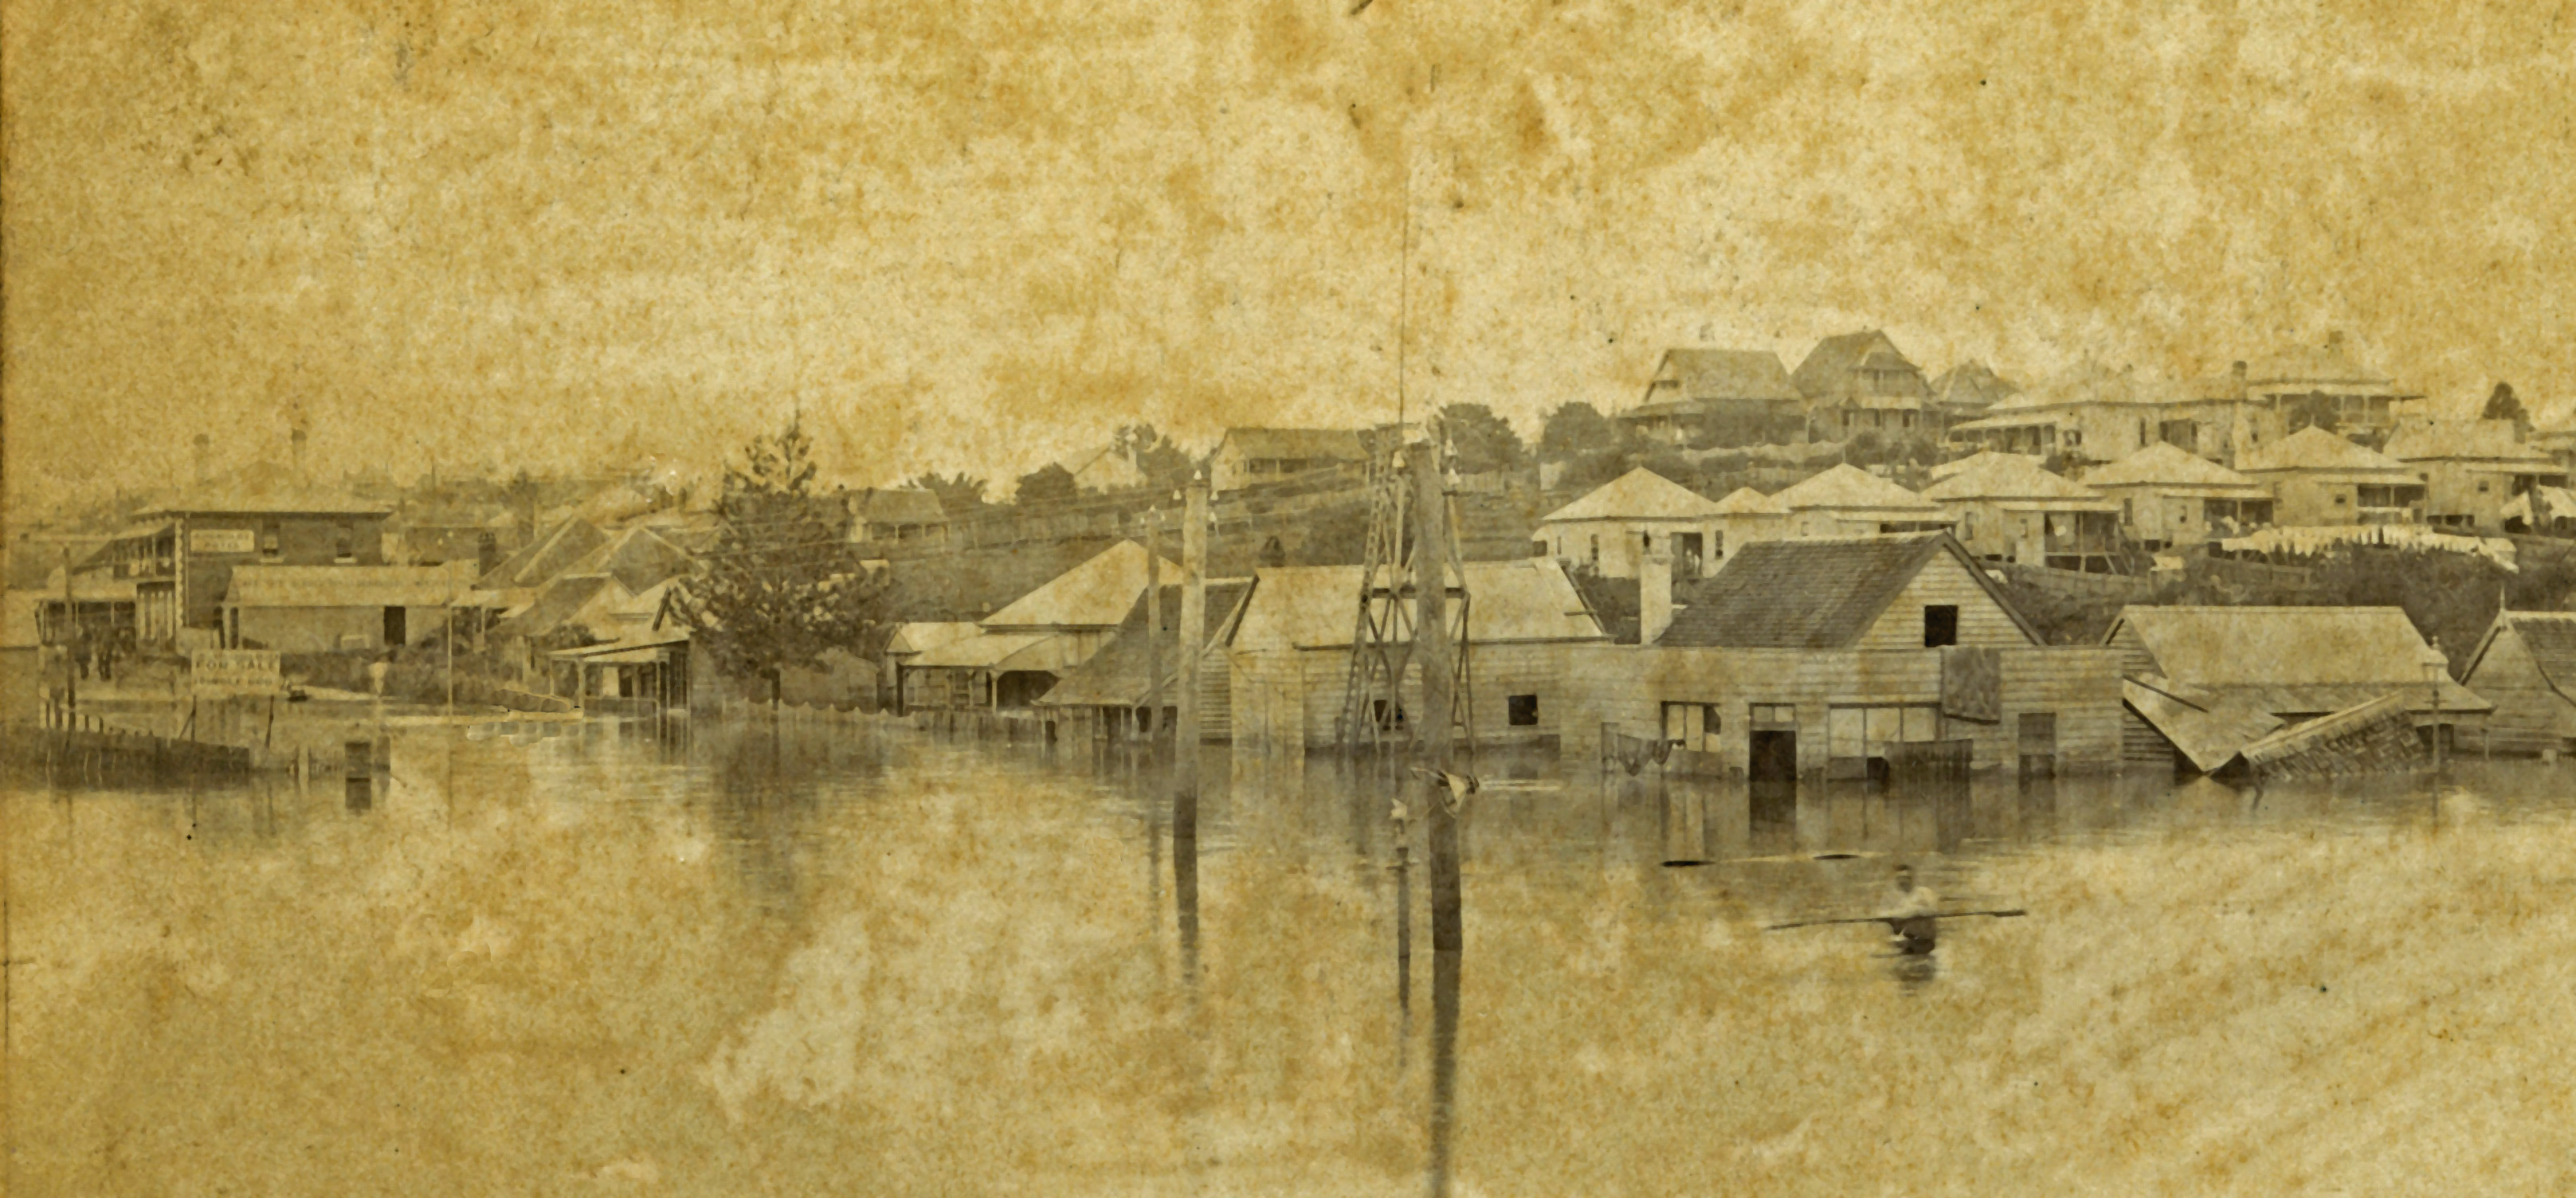 Floodwaters Melbourne and Boundary Streets 1893 slq ps